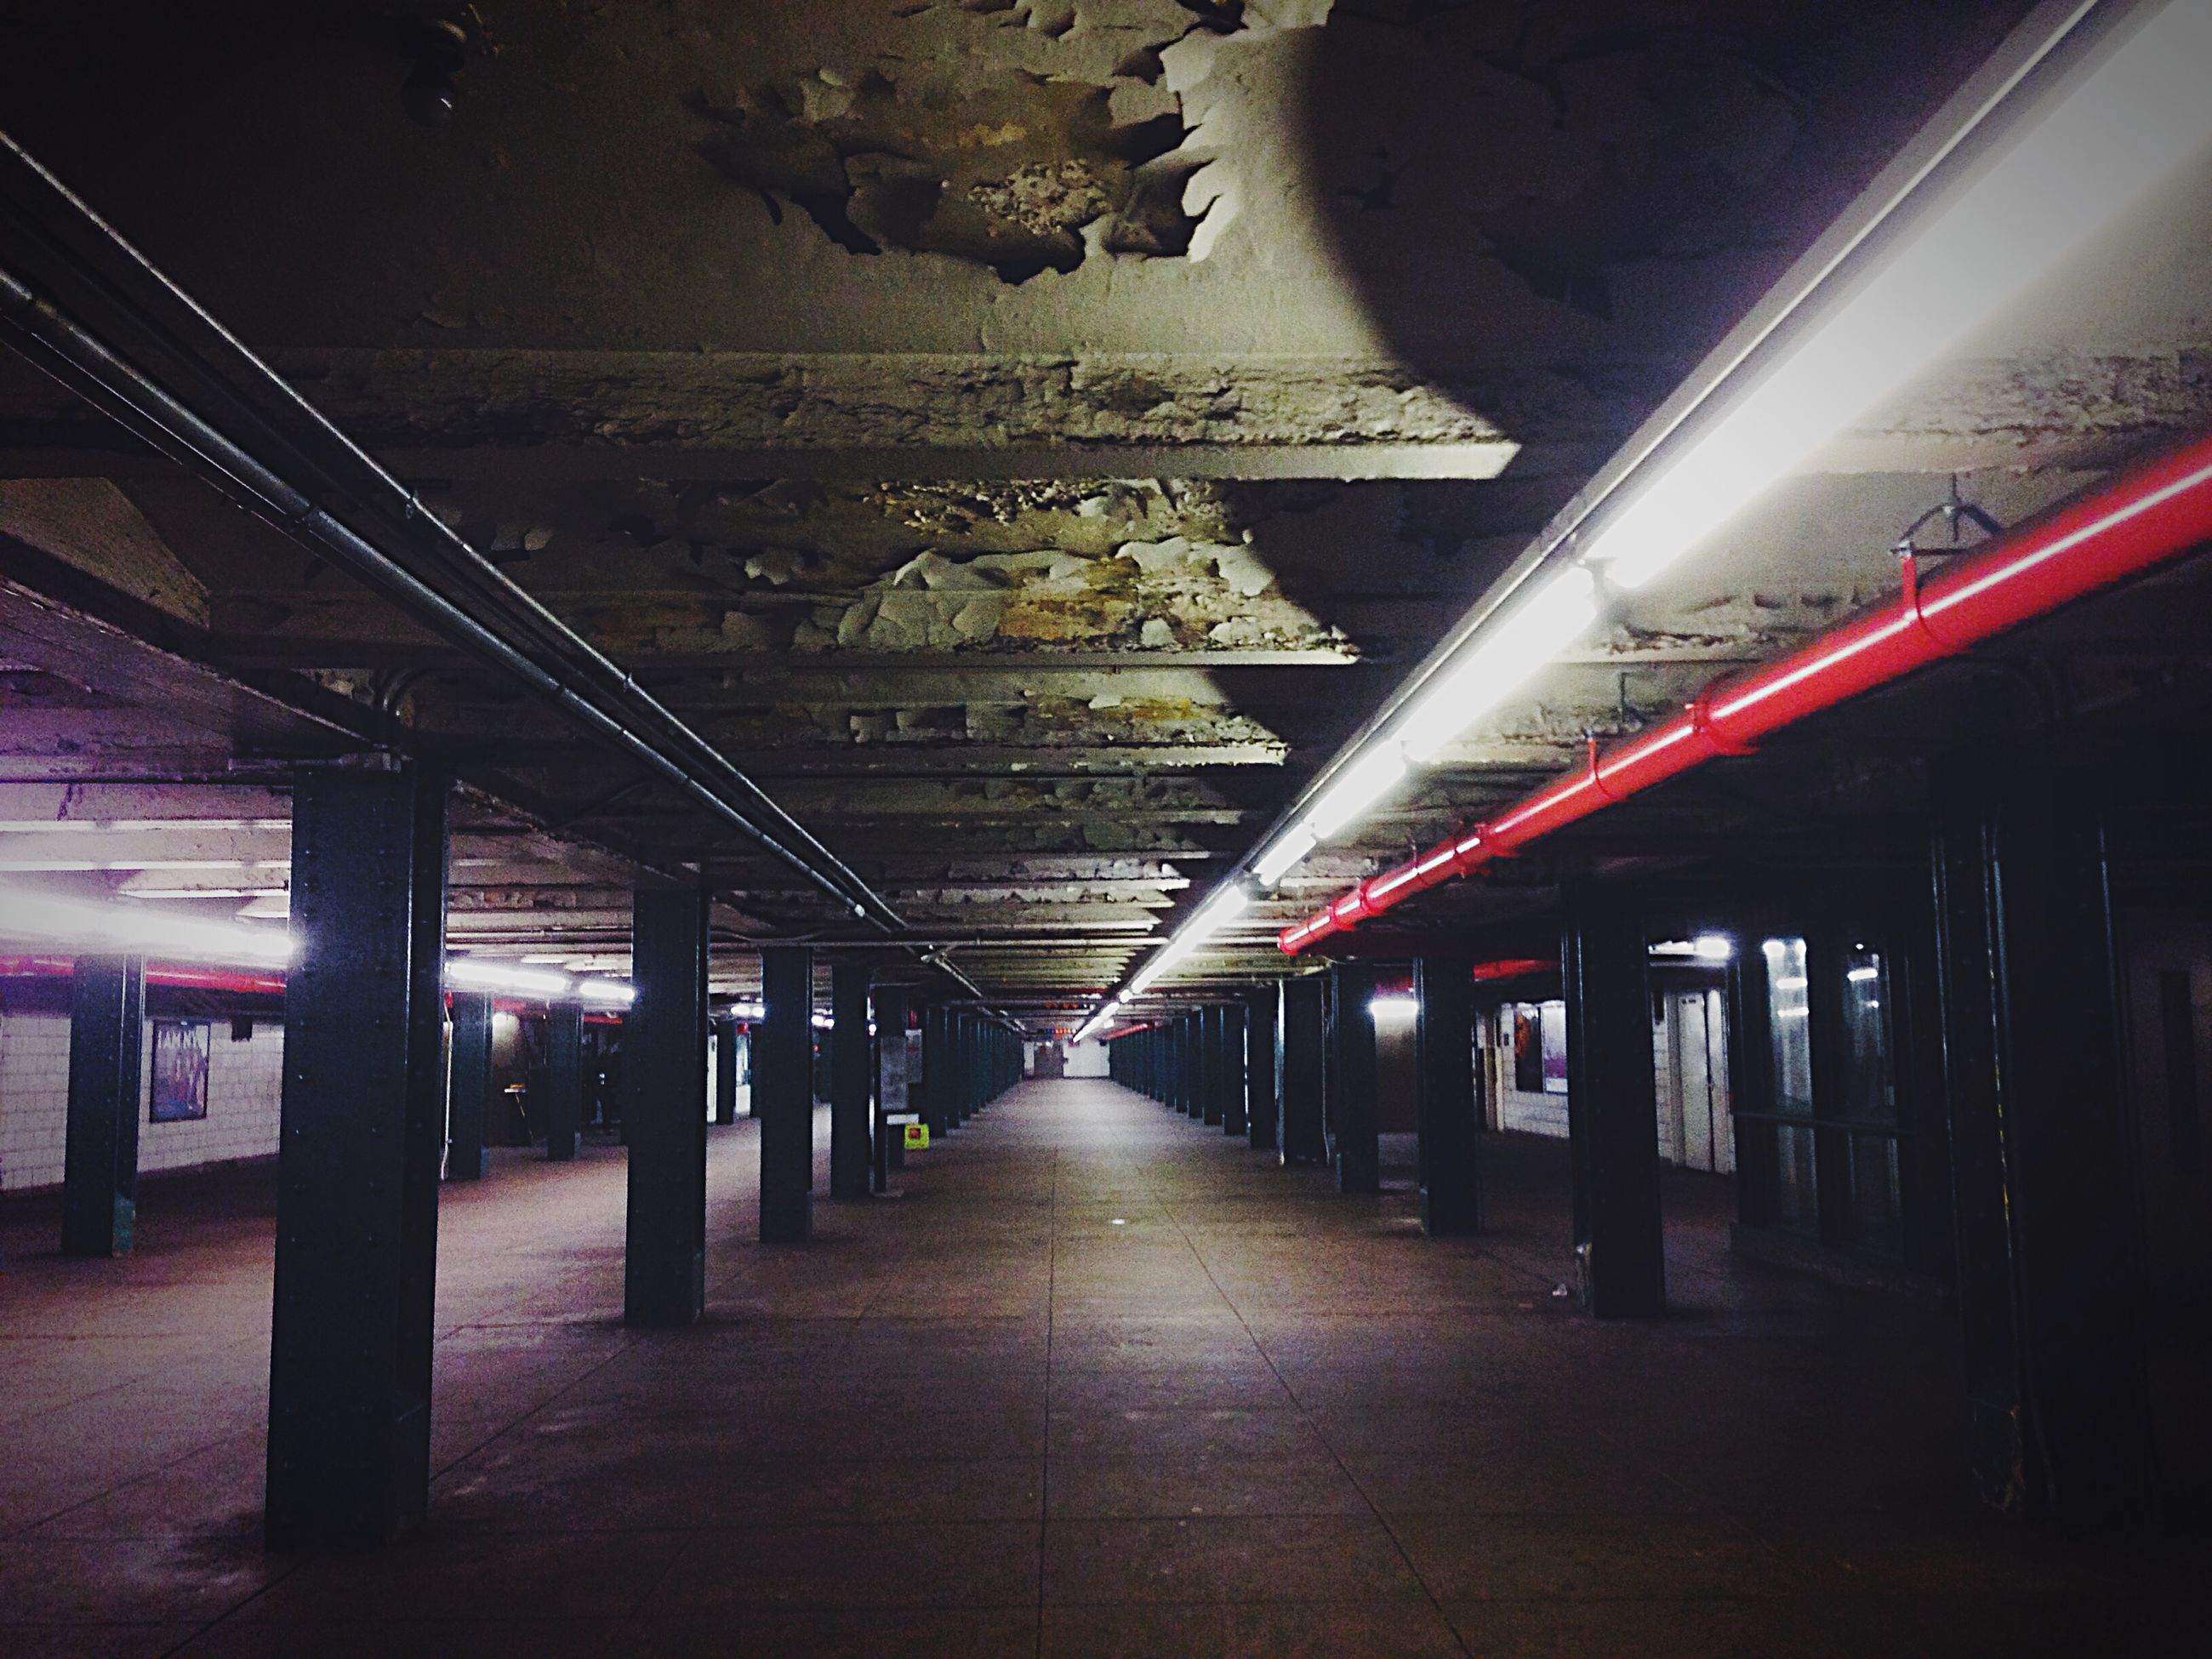 indoors, ceiling, illuminated, the way forward, architecture, built structure, transportation, diminishing perspective, empty, architectural column, lighting equipment, corridor, railroad station platform, vanishing point, long, flooring, railroad station, interior, column, subway